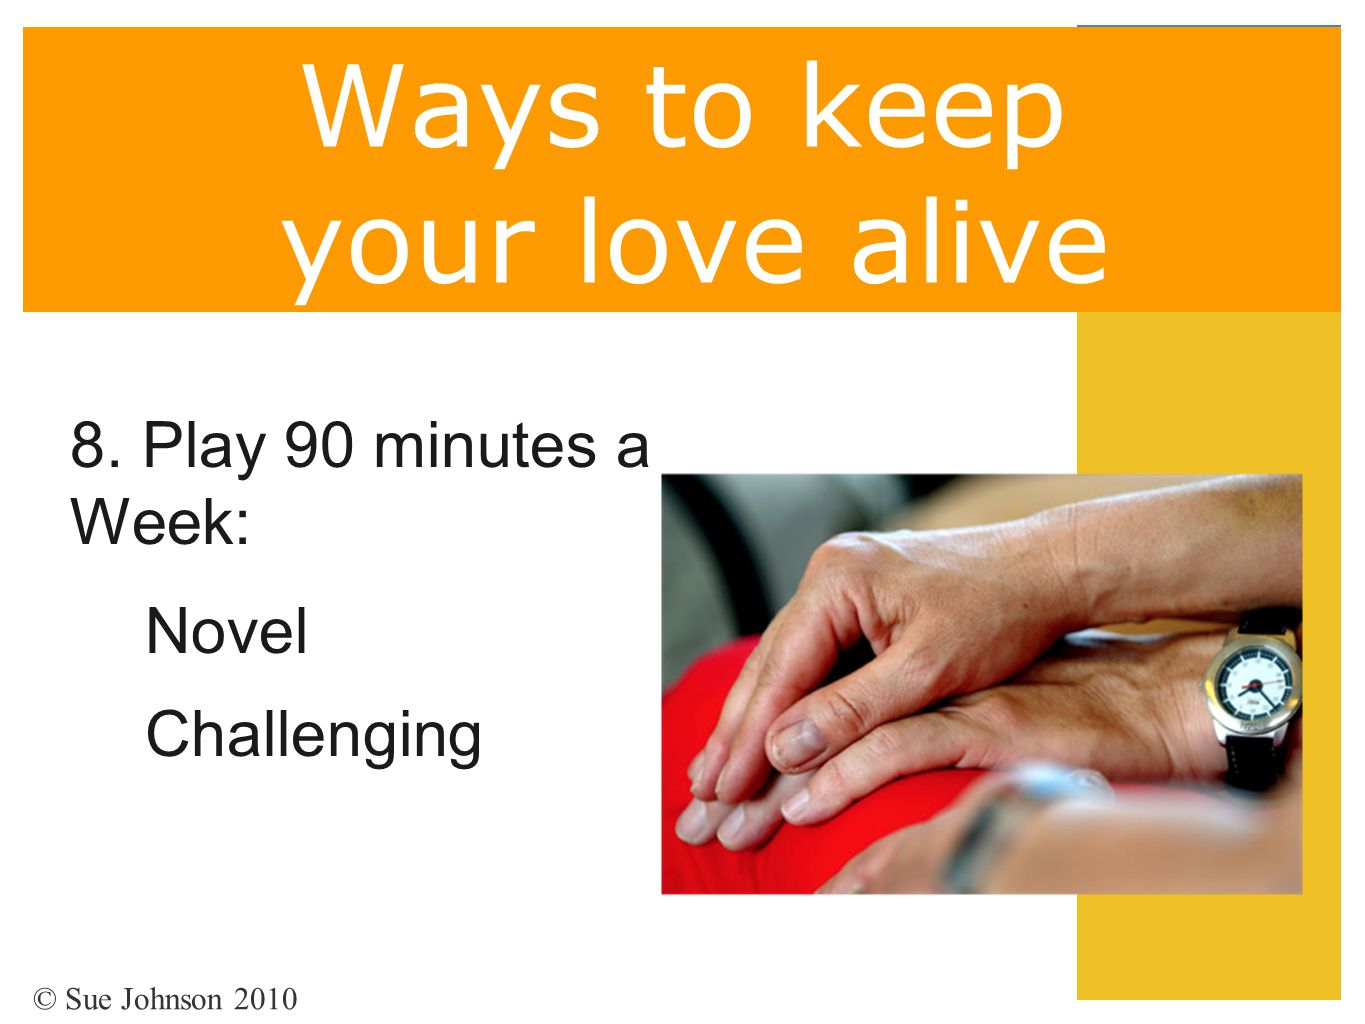 Ways to keep your love alive 8. Play 90 minutes a Week: Novel Challenging © Sue Johnson 2010